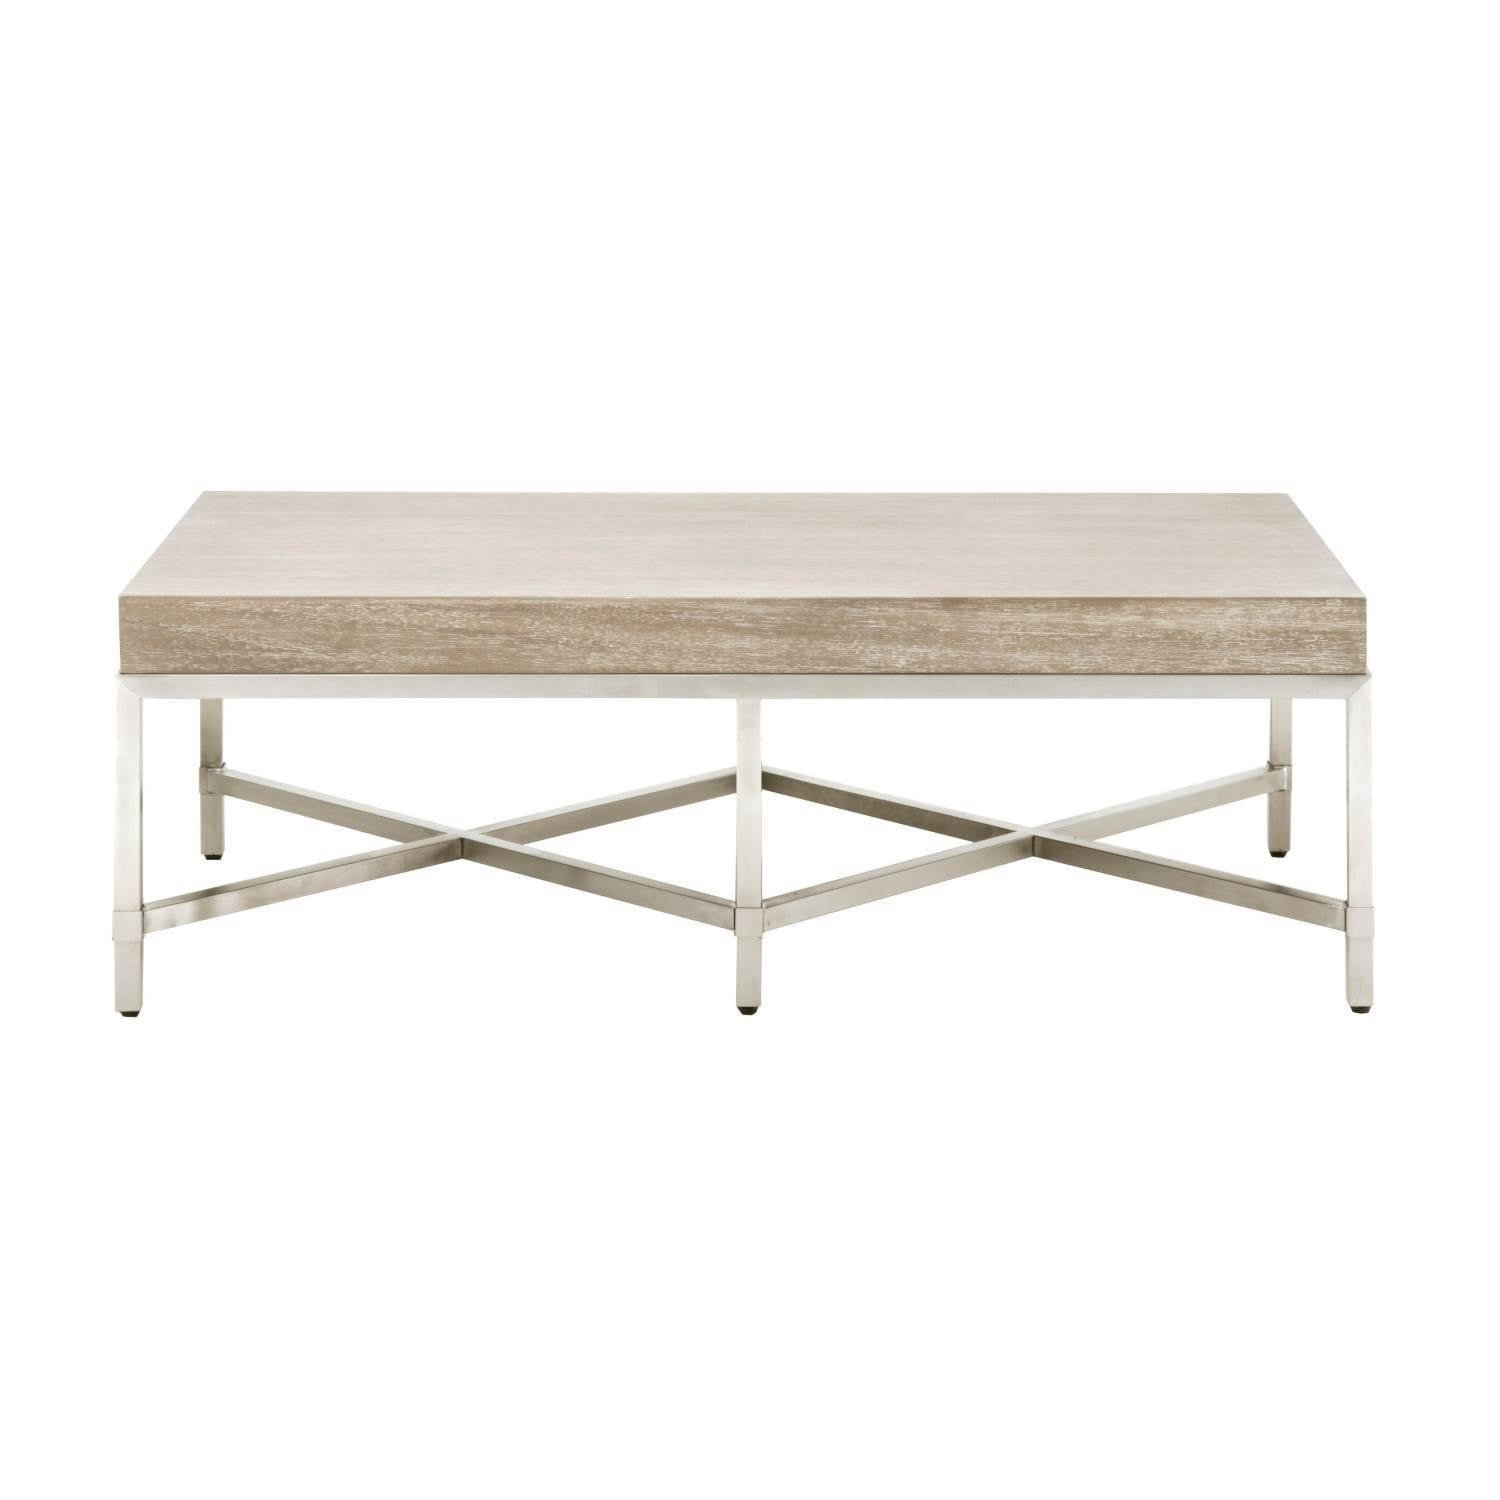 Strand Coffee Table in Natural Gray